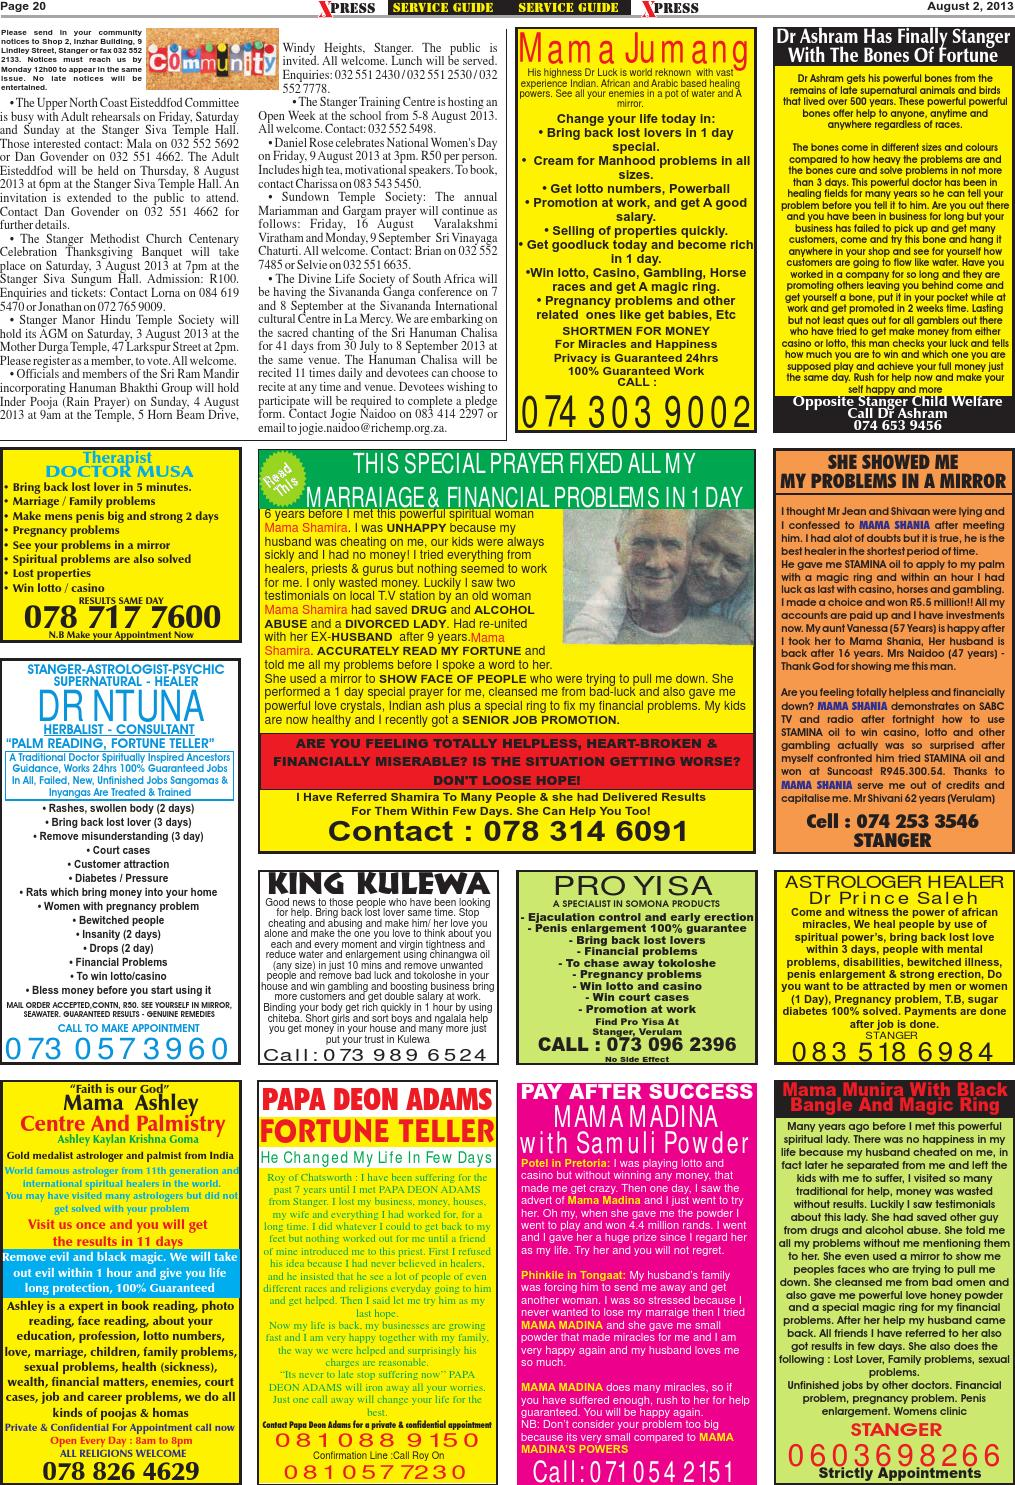 Xpress times 02 08 13 by Ahmed Desai - issuu